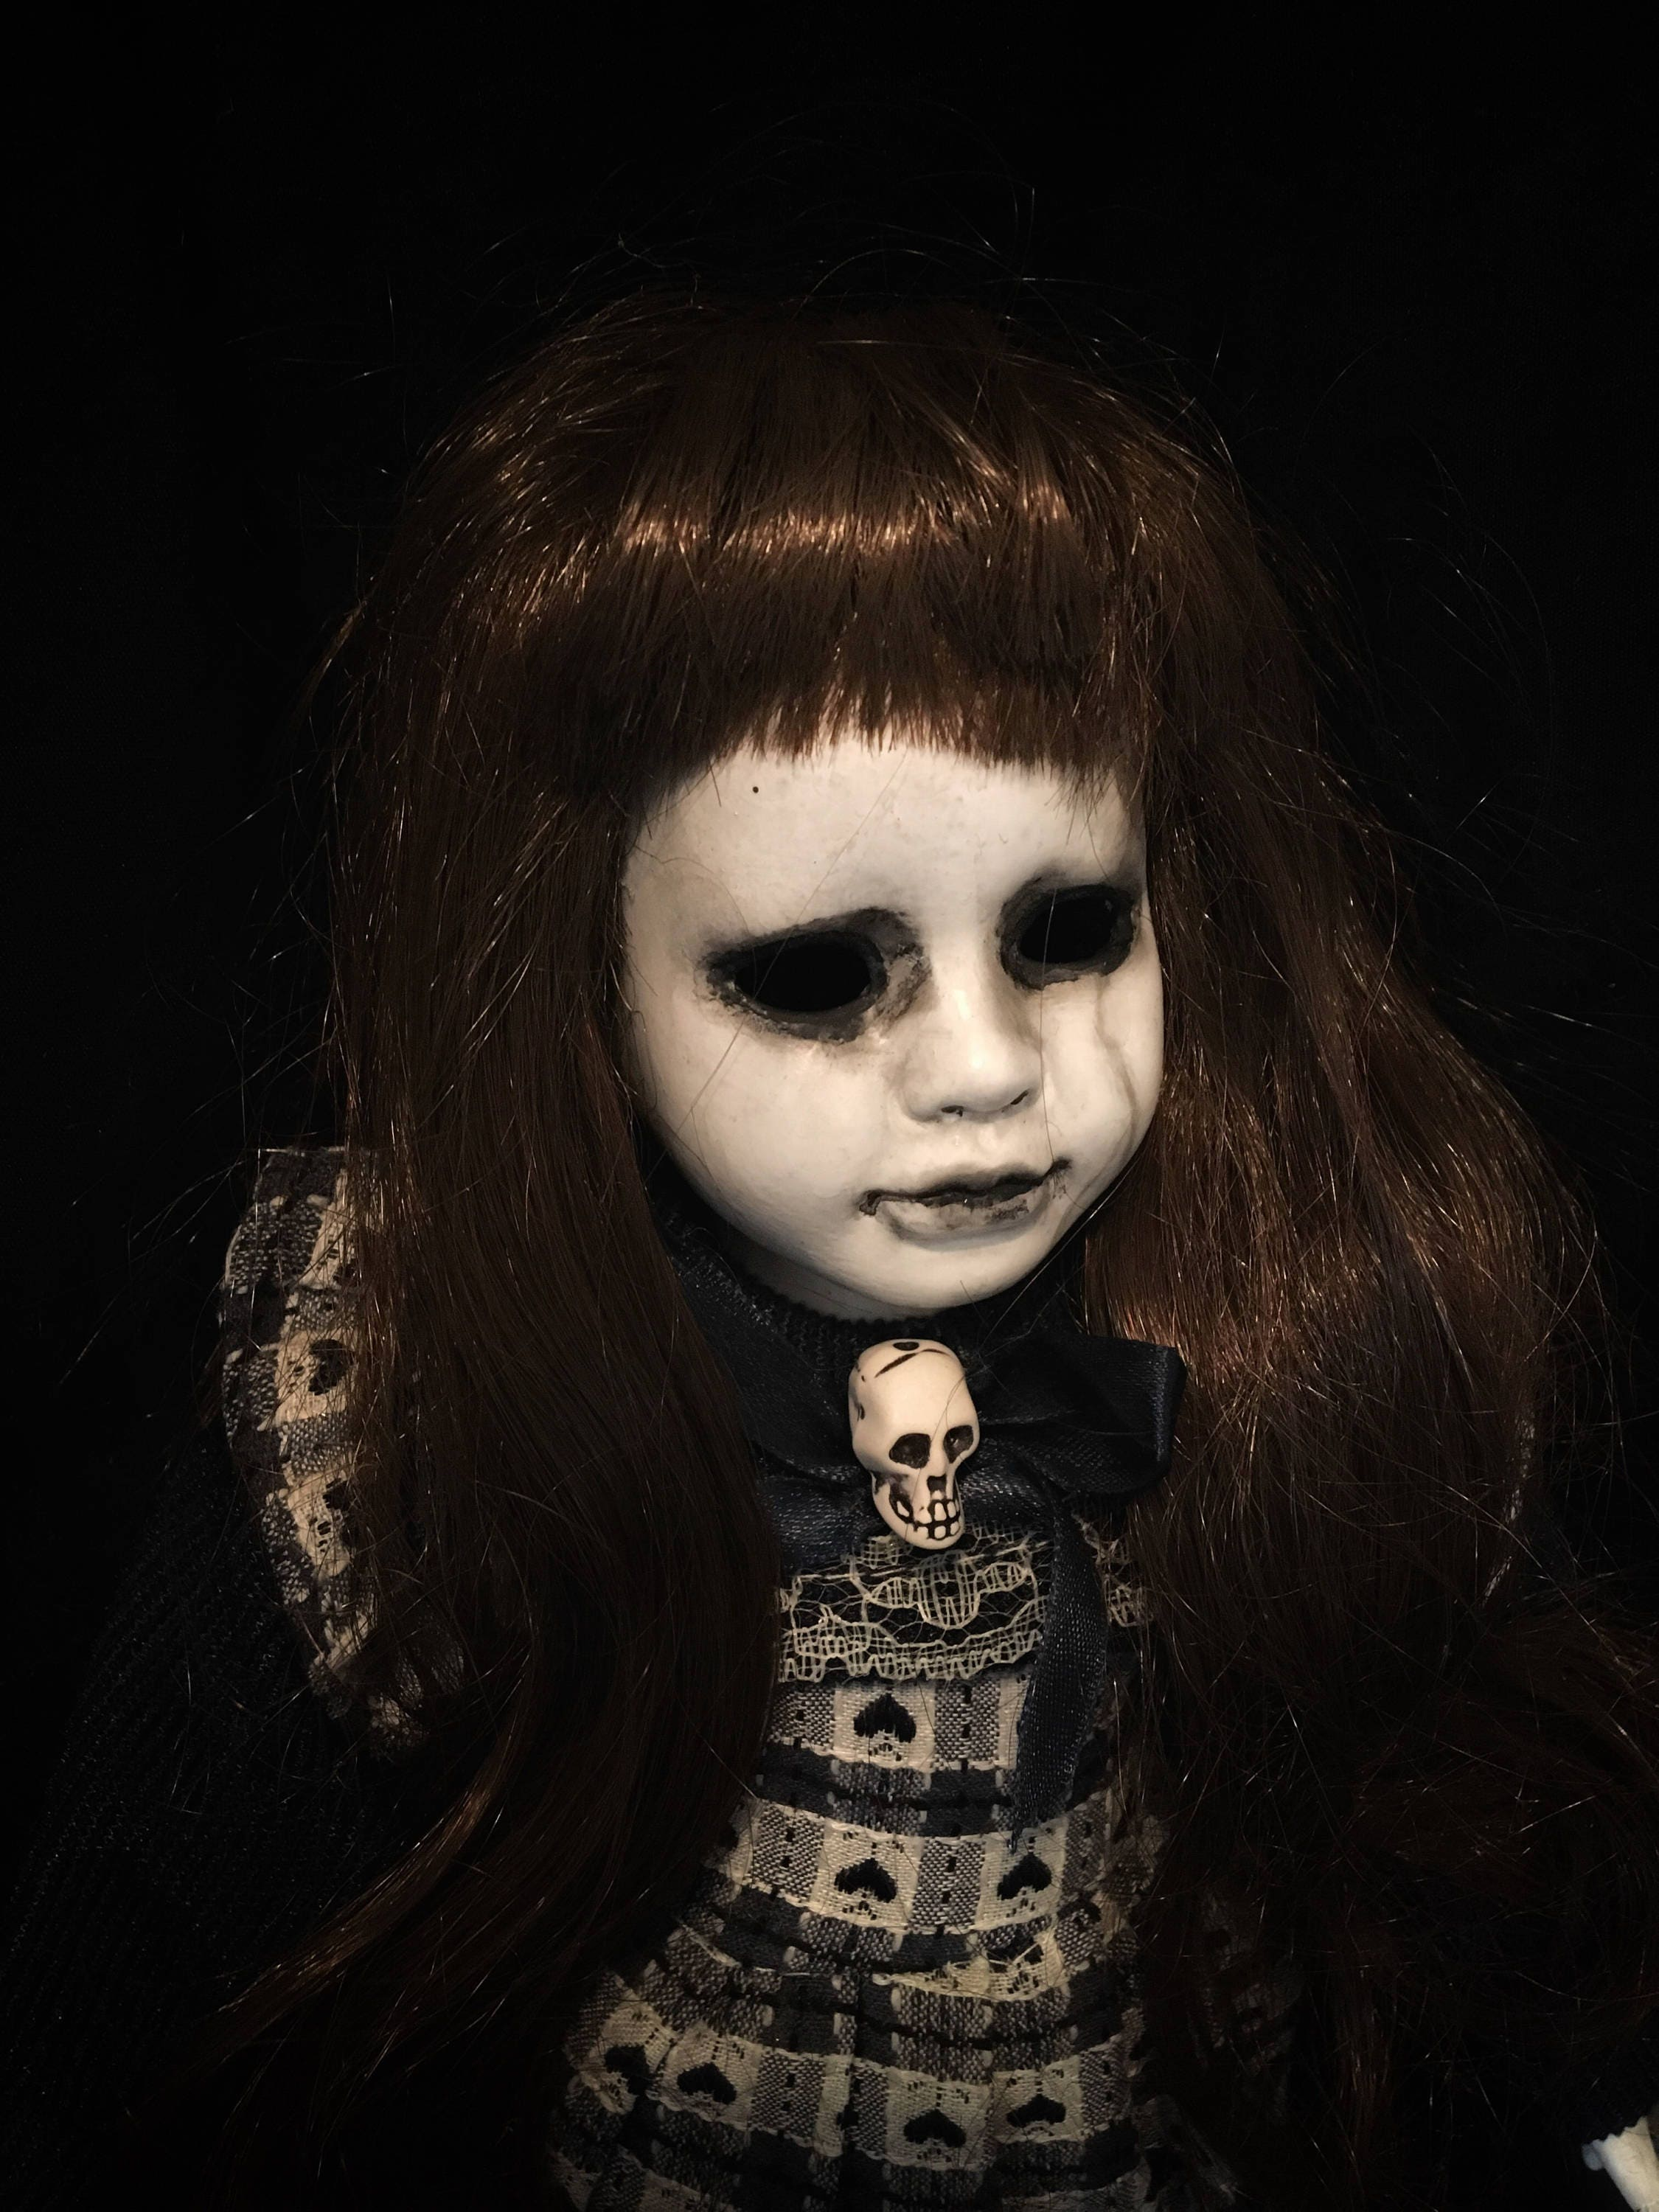 art doll ooak doll halloween doll horror doll creepy doll gothic doll porcelain doll custom doll hollow eyes